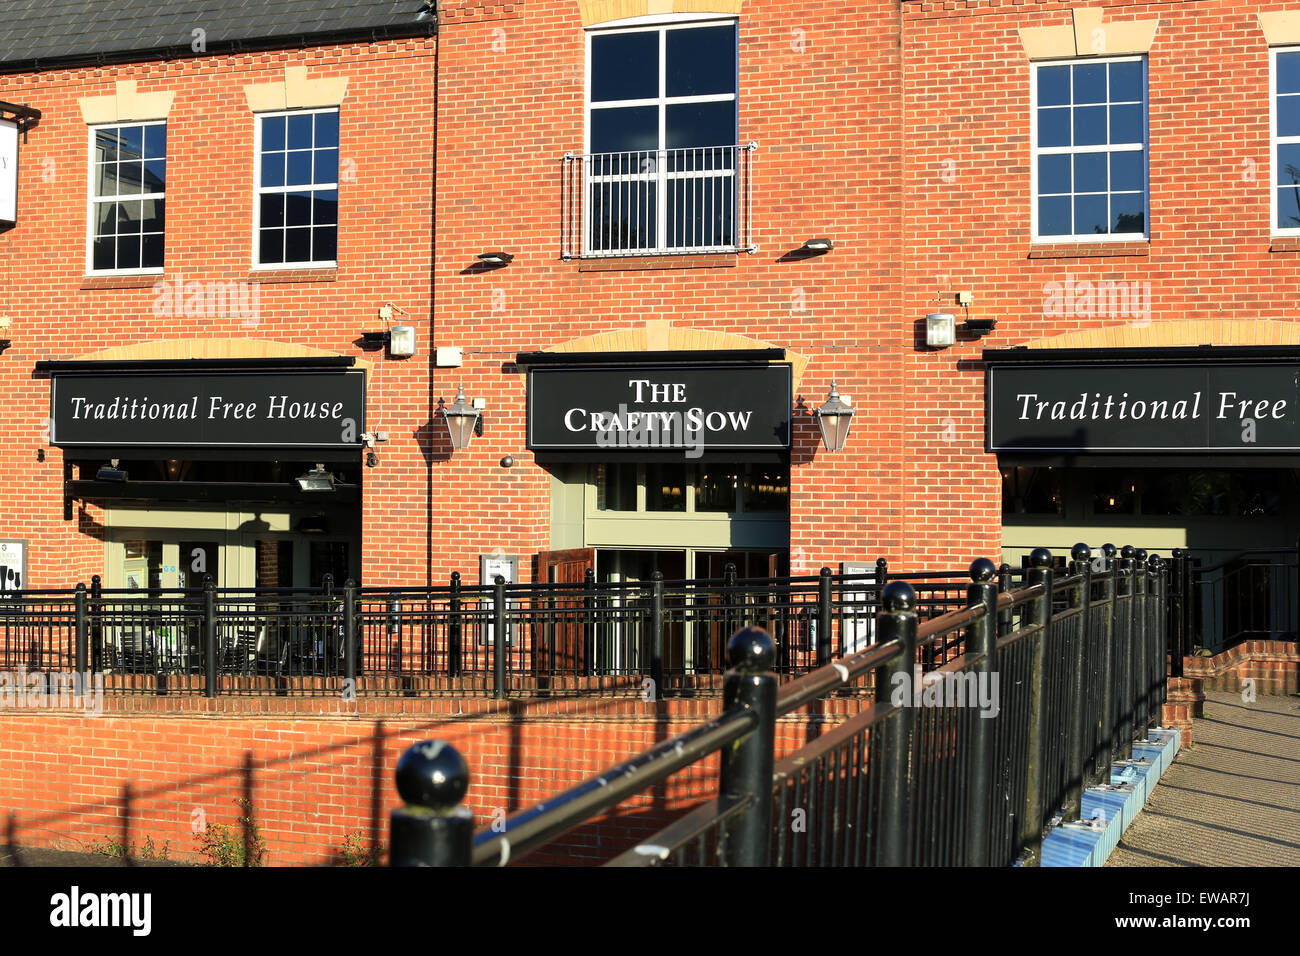 The Crafty Sow public house in Stafford - Stock Image